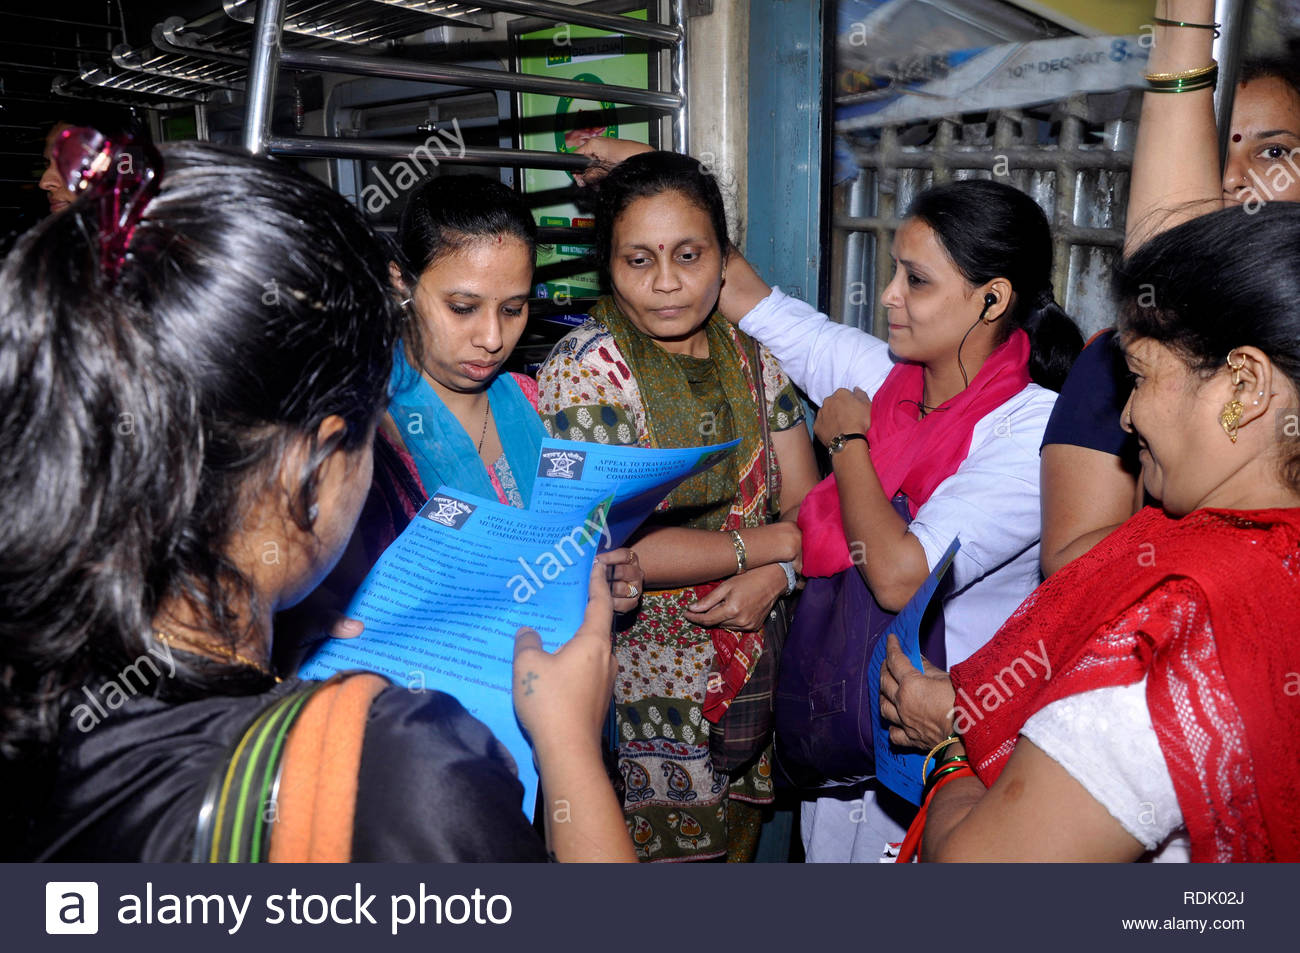 Women railway police personnel distribute a social awareness poster to protect women commuters in a suburban train in Mumbai, India on January 1, 2013. (Deven Lad/ SOLARIS IMAGES) - Stock Image